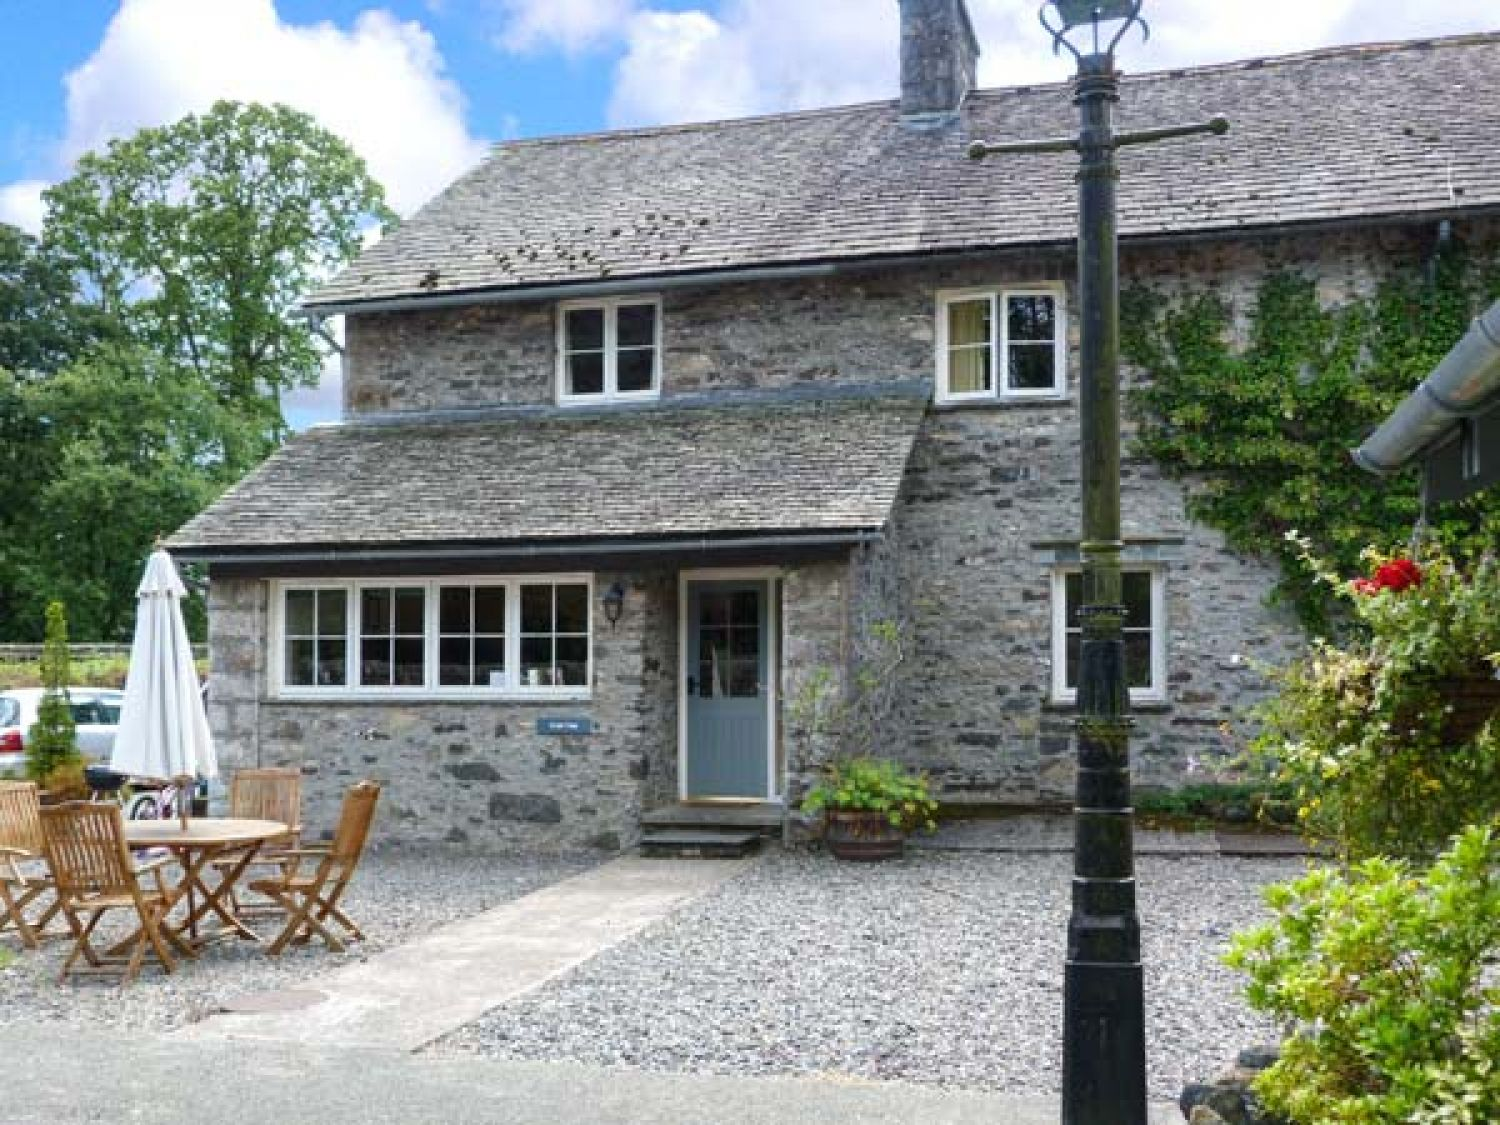 Crabtree hawkshead force mills the lake district and cumbria self catering holiday cottage for Lake district cottages with swimming pool